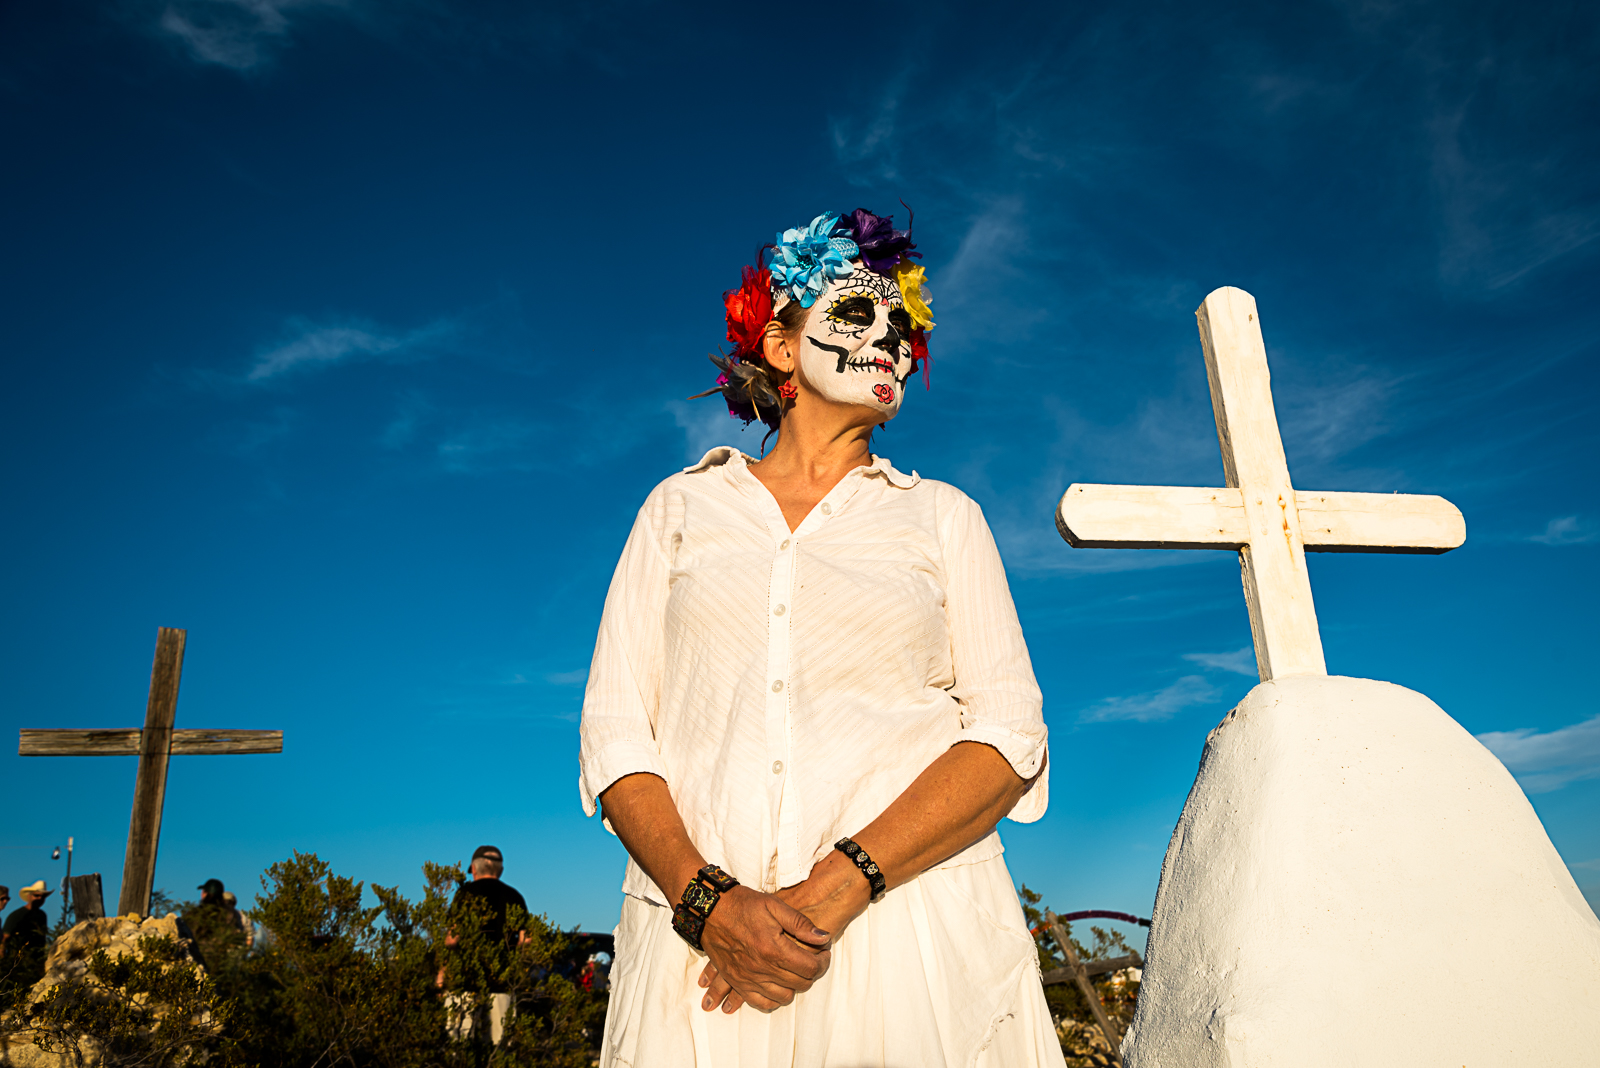 Terlingua_DayoftheDead_Sharon_McClanahan.jpg